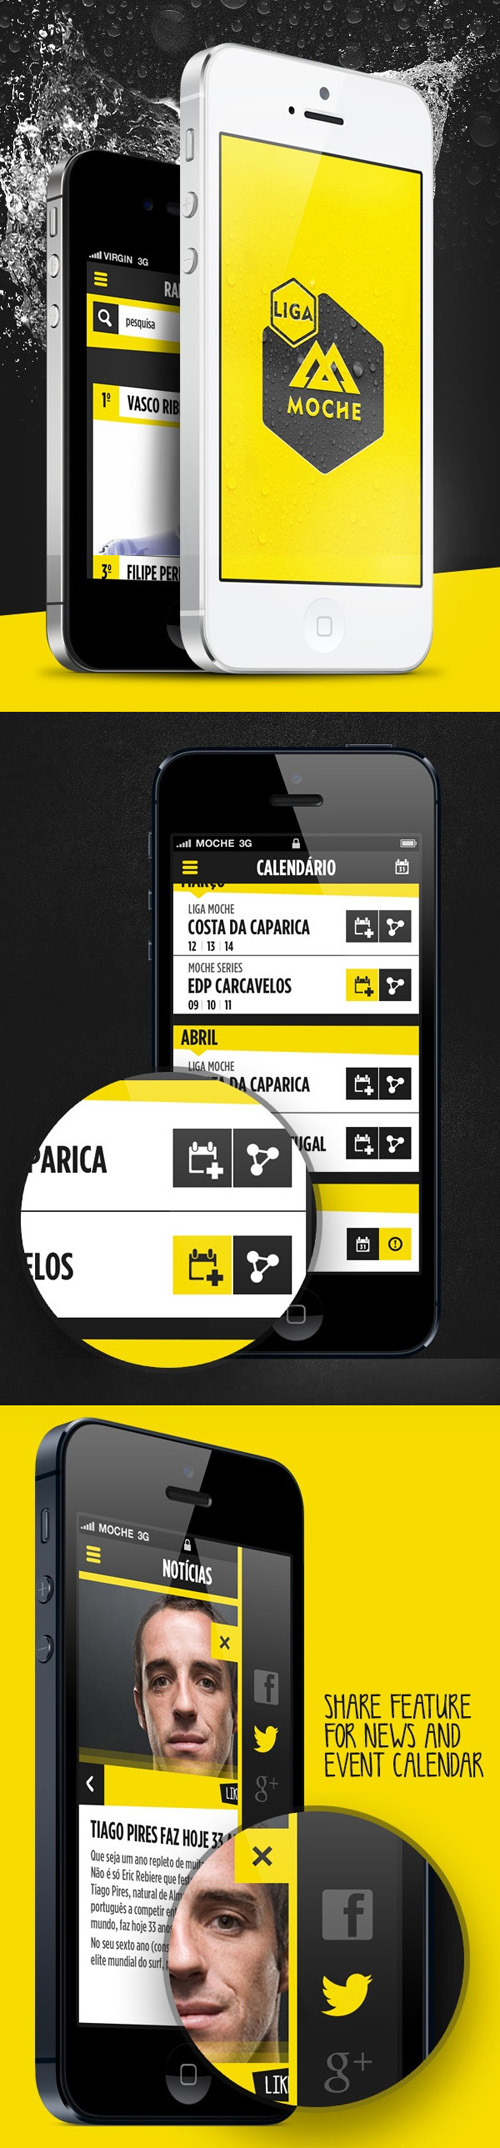 Flat Mobile UI Design and UX-18